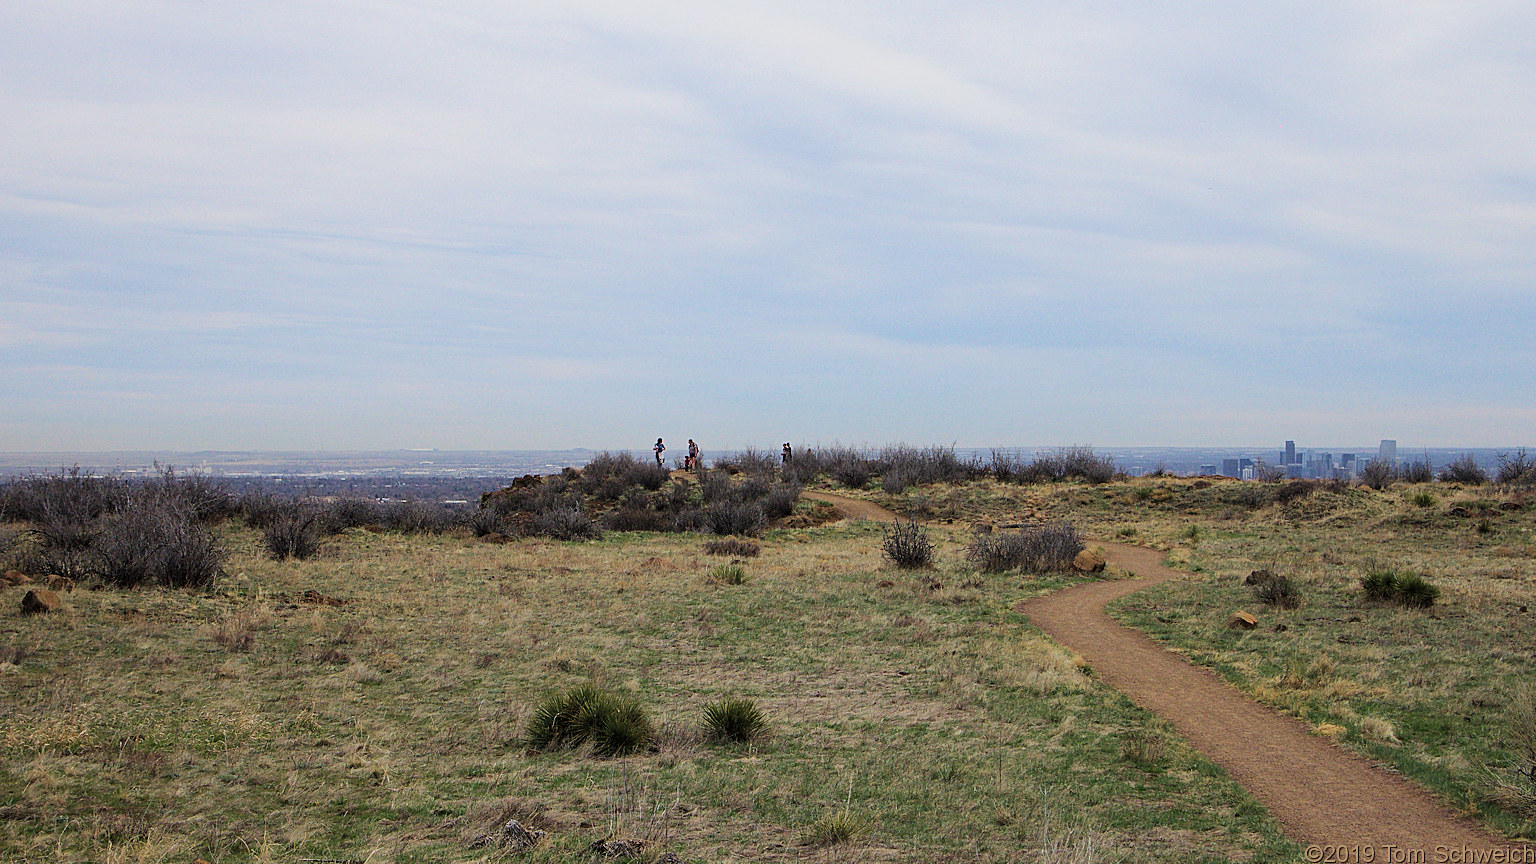 Colorado, Jefferson County, South Table Mountain, Cretaceous Trail, Tertiary Trail